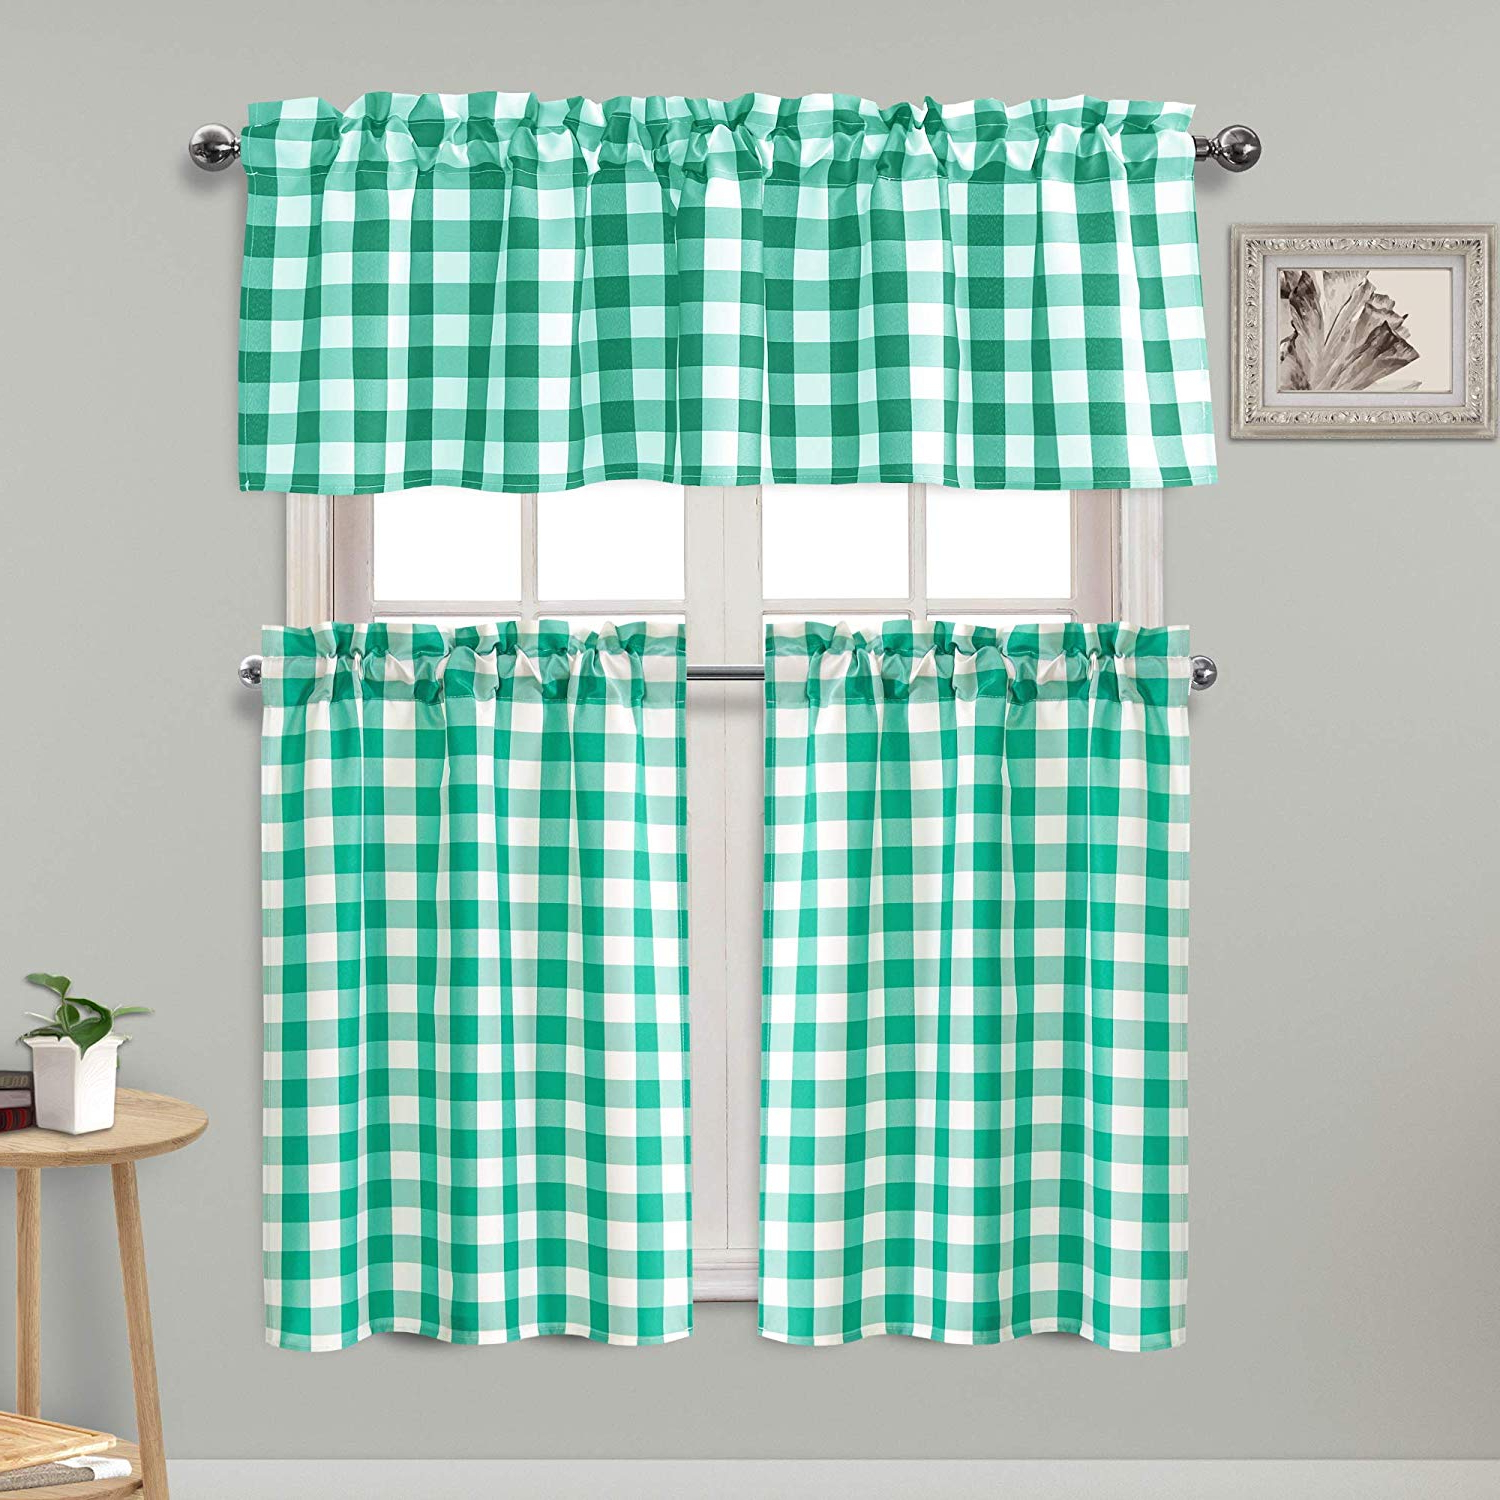 Popular Light Filtering Kitchen Tiers Throughout Homedocr 3 Piece Semi Sheer Kitchen Curtains Thermal Insulated And Light Filtering Checkered Tier And Valance Window Curtains Set, Green (View 9 of 20)